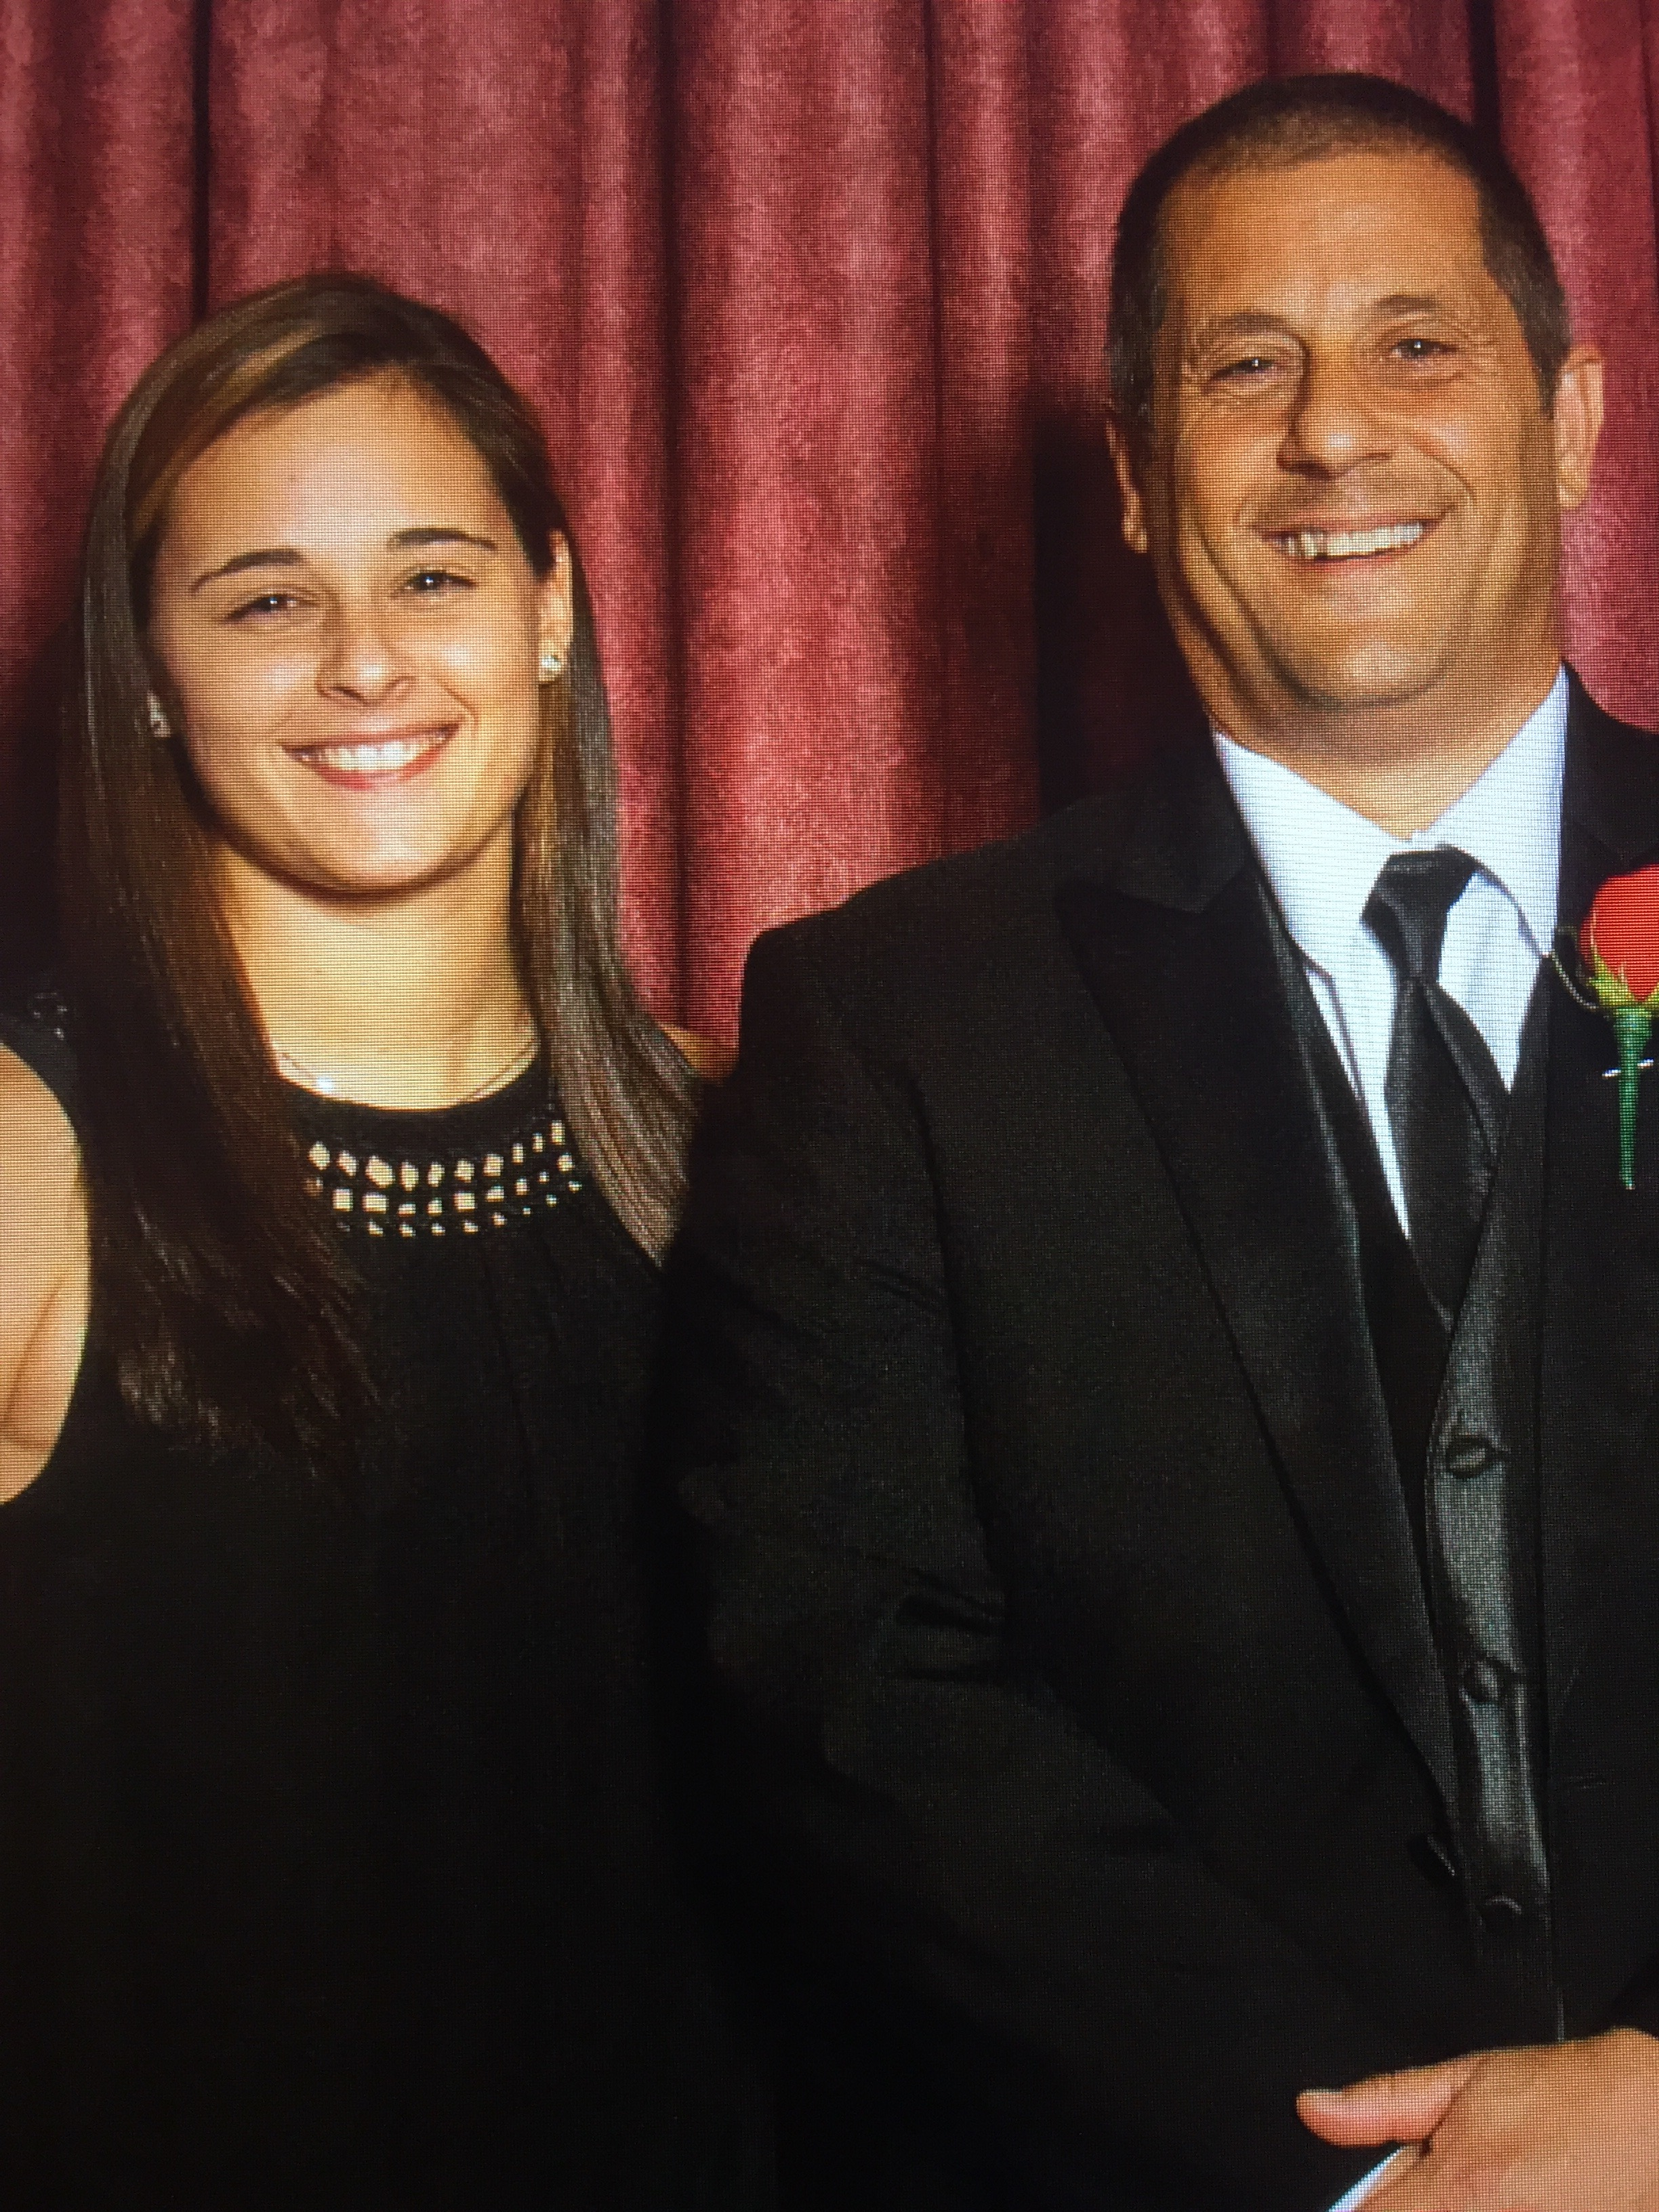 Father-of-three Michael Salomone with his daughter Maggie.